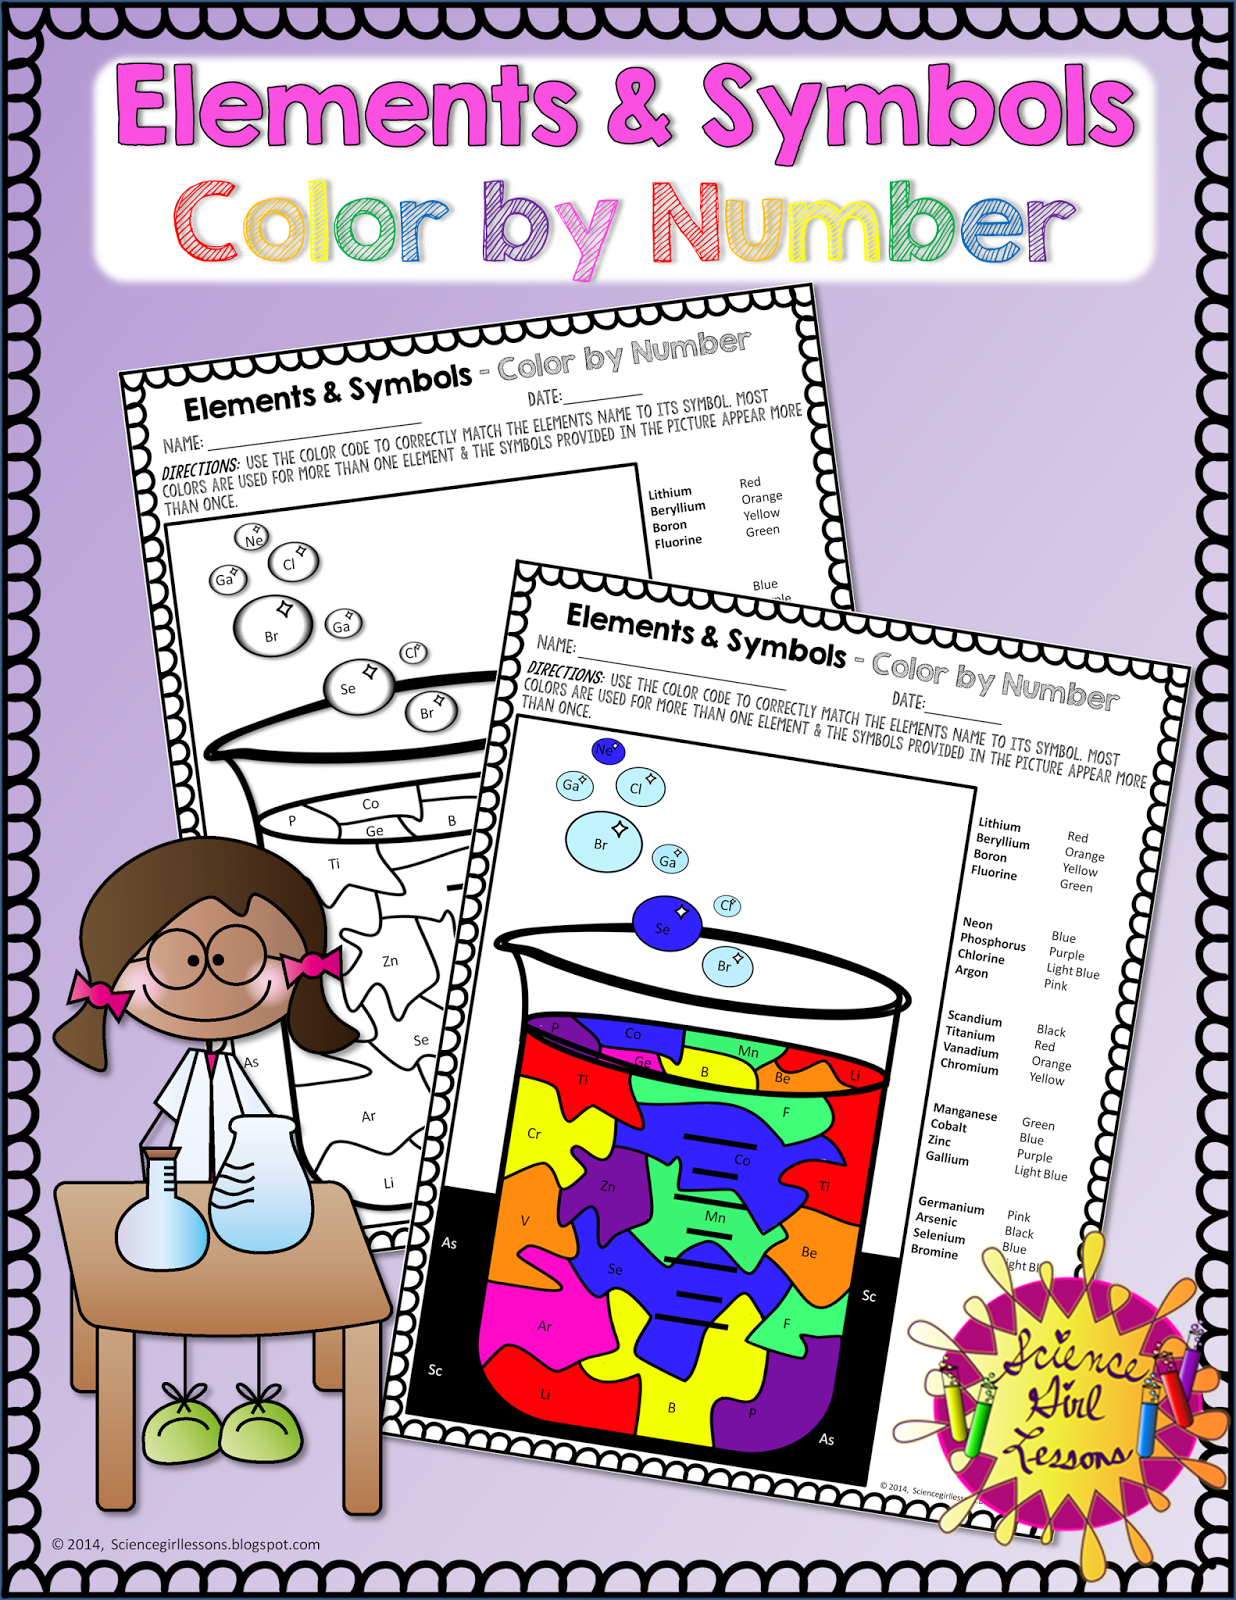 Co color by number girls - Put A Fun Twist On Learning Chemical Symbols With This Color By Chemical Symbols